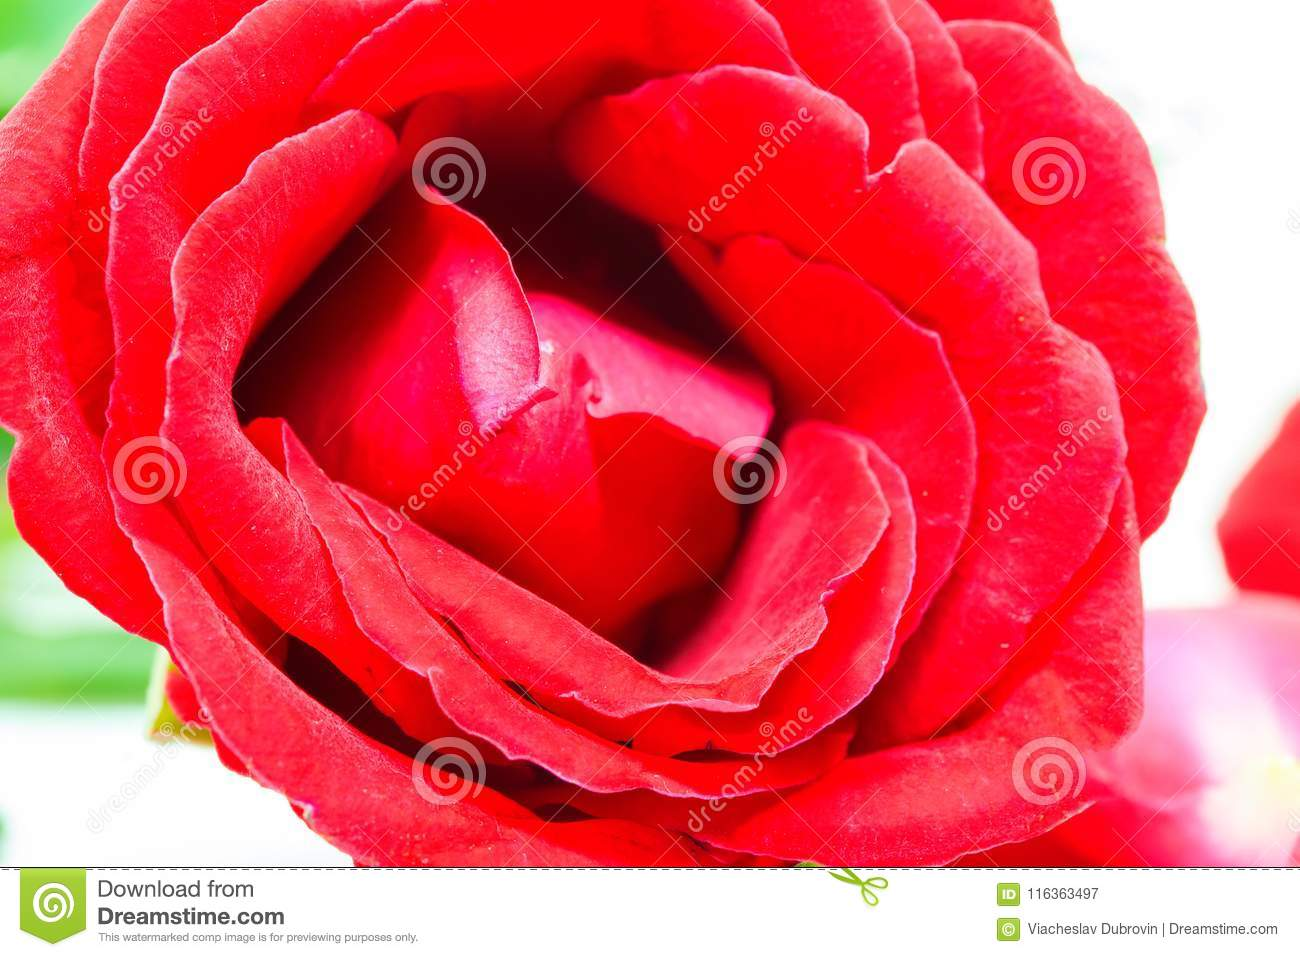 Red rose on white background hot pink flower banner template download red rose on white background hot pink flower banner template wedding decor mightylinksfo